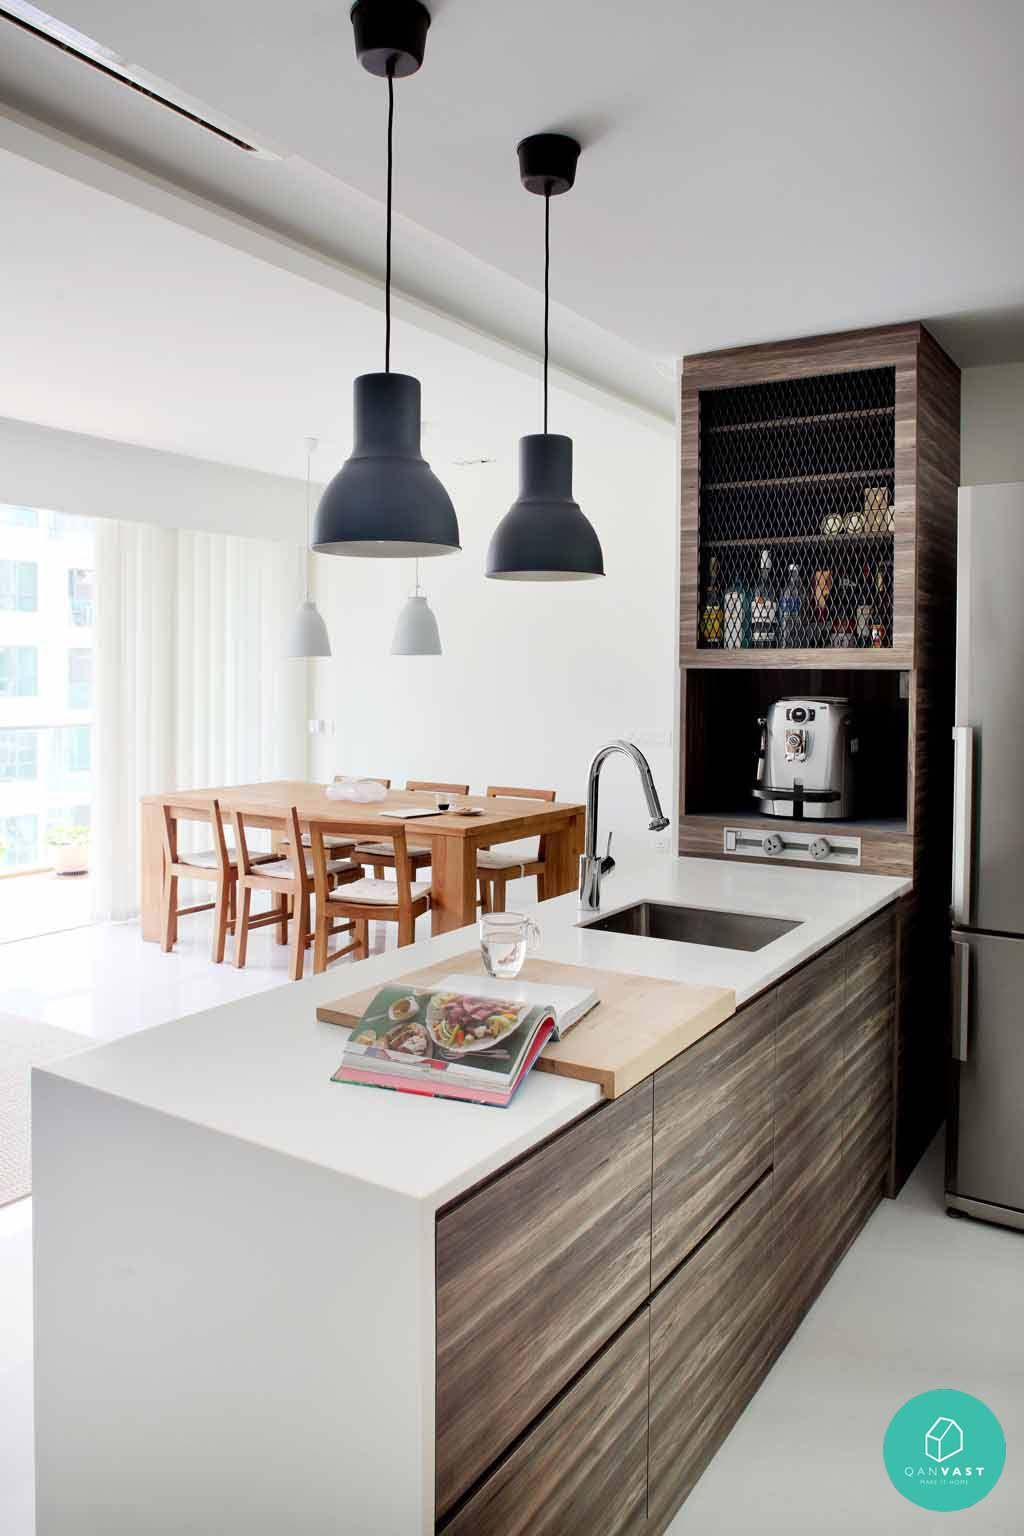 Storage Wars - 10 Charming Singapore Home Renovation Projects That ...